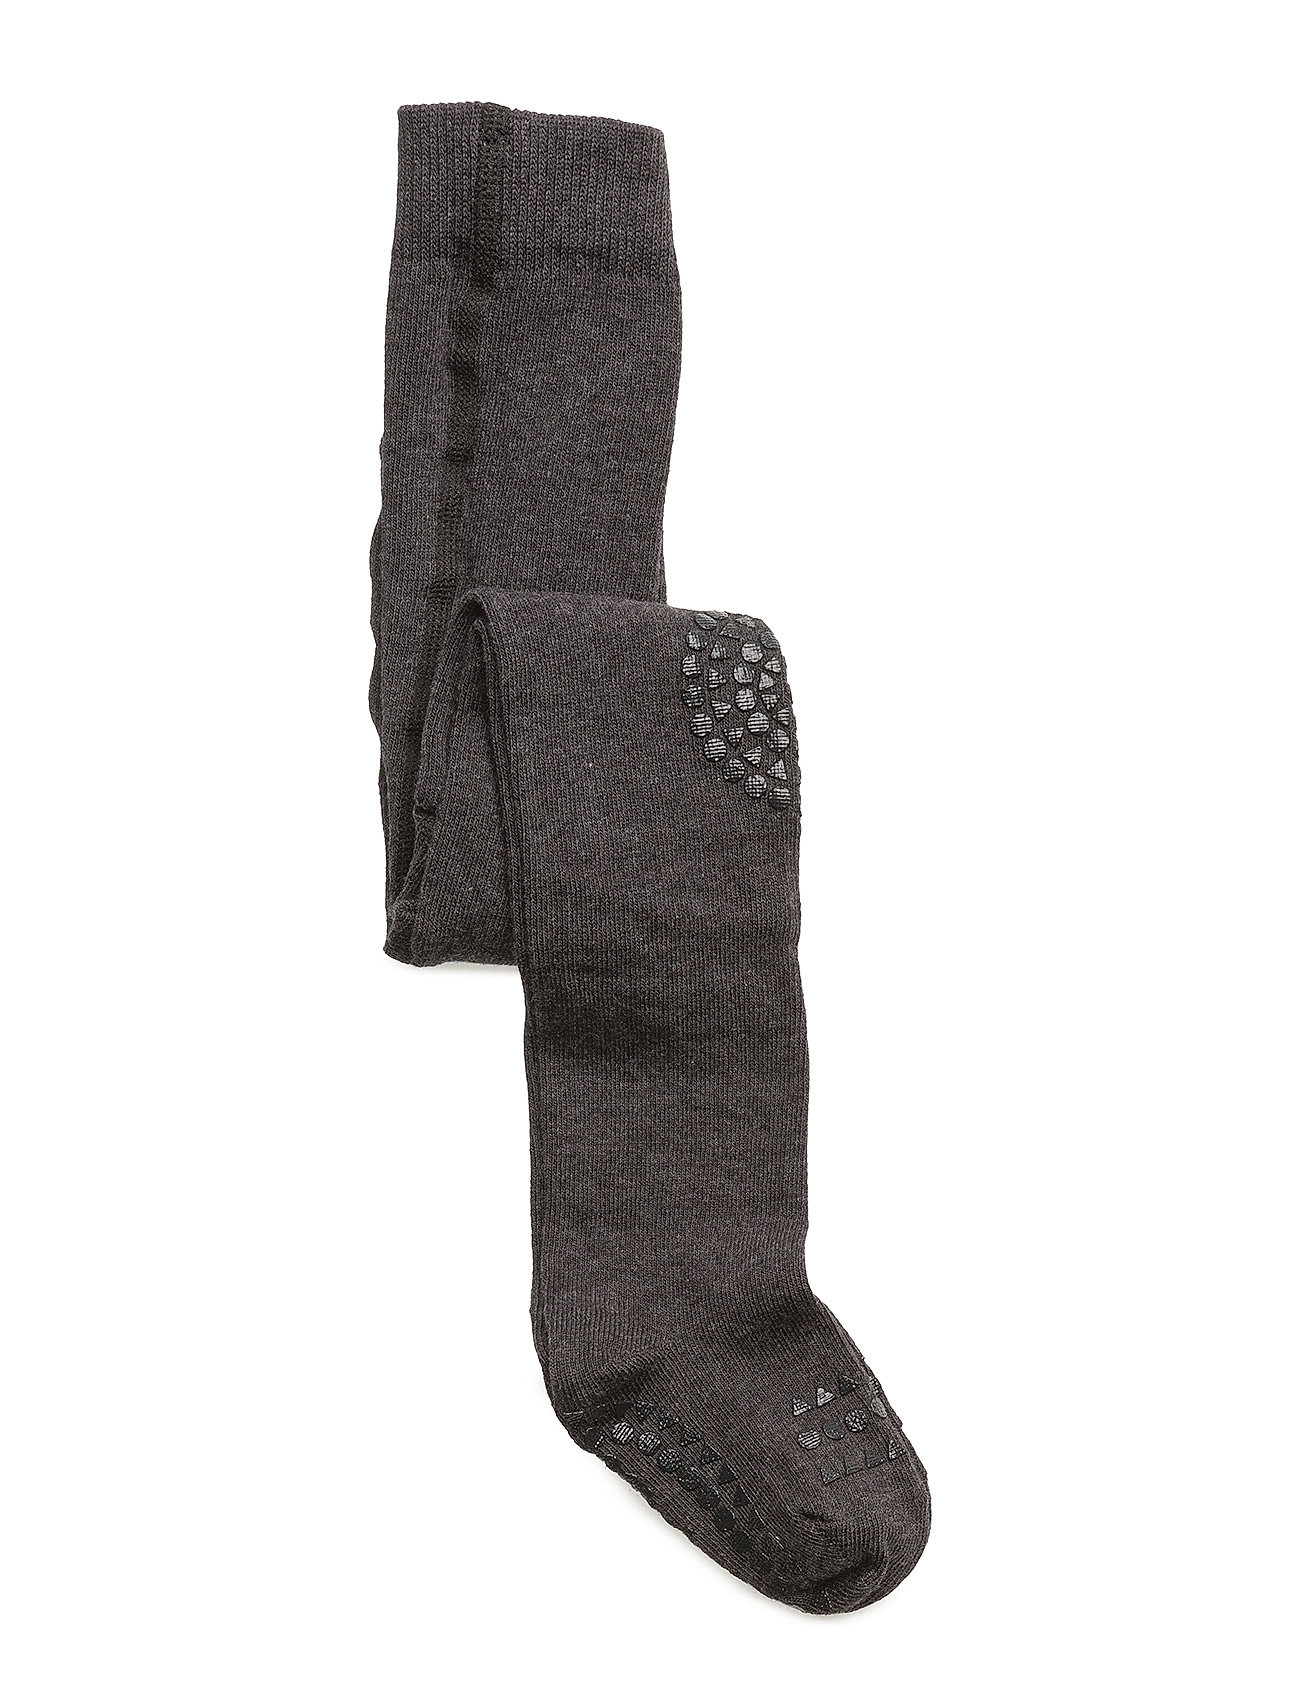 GoBabyGo Tights - DARK GREY MéLANGE